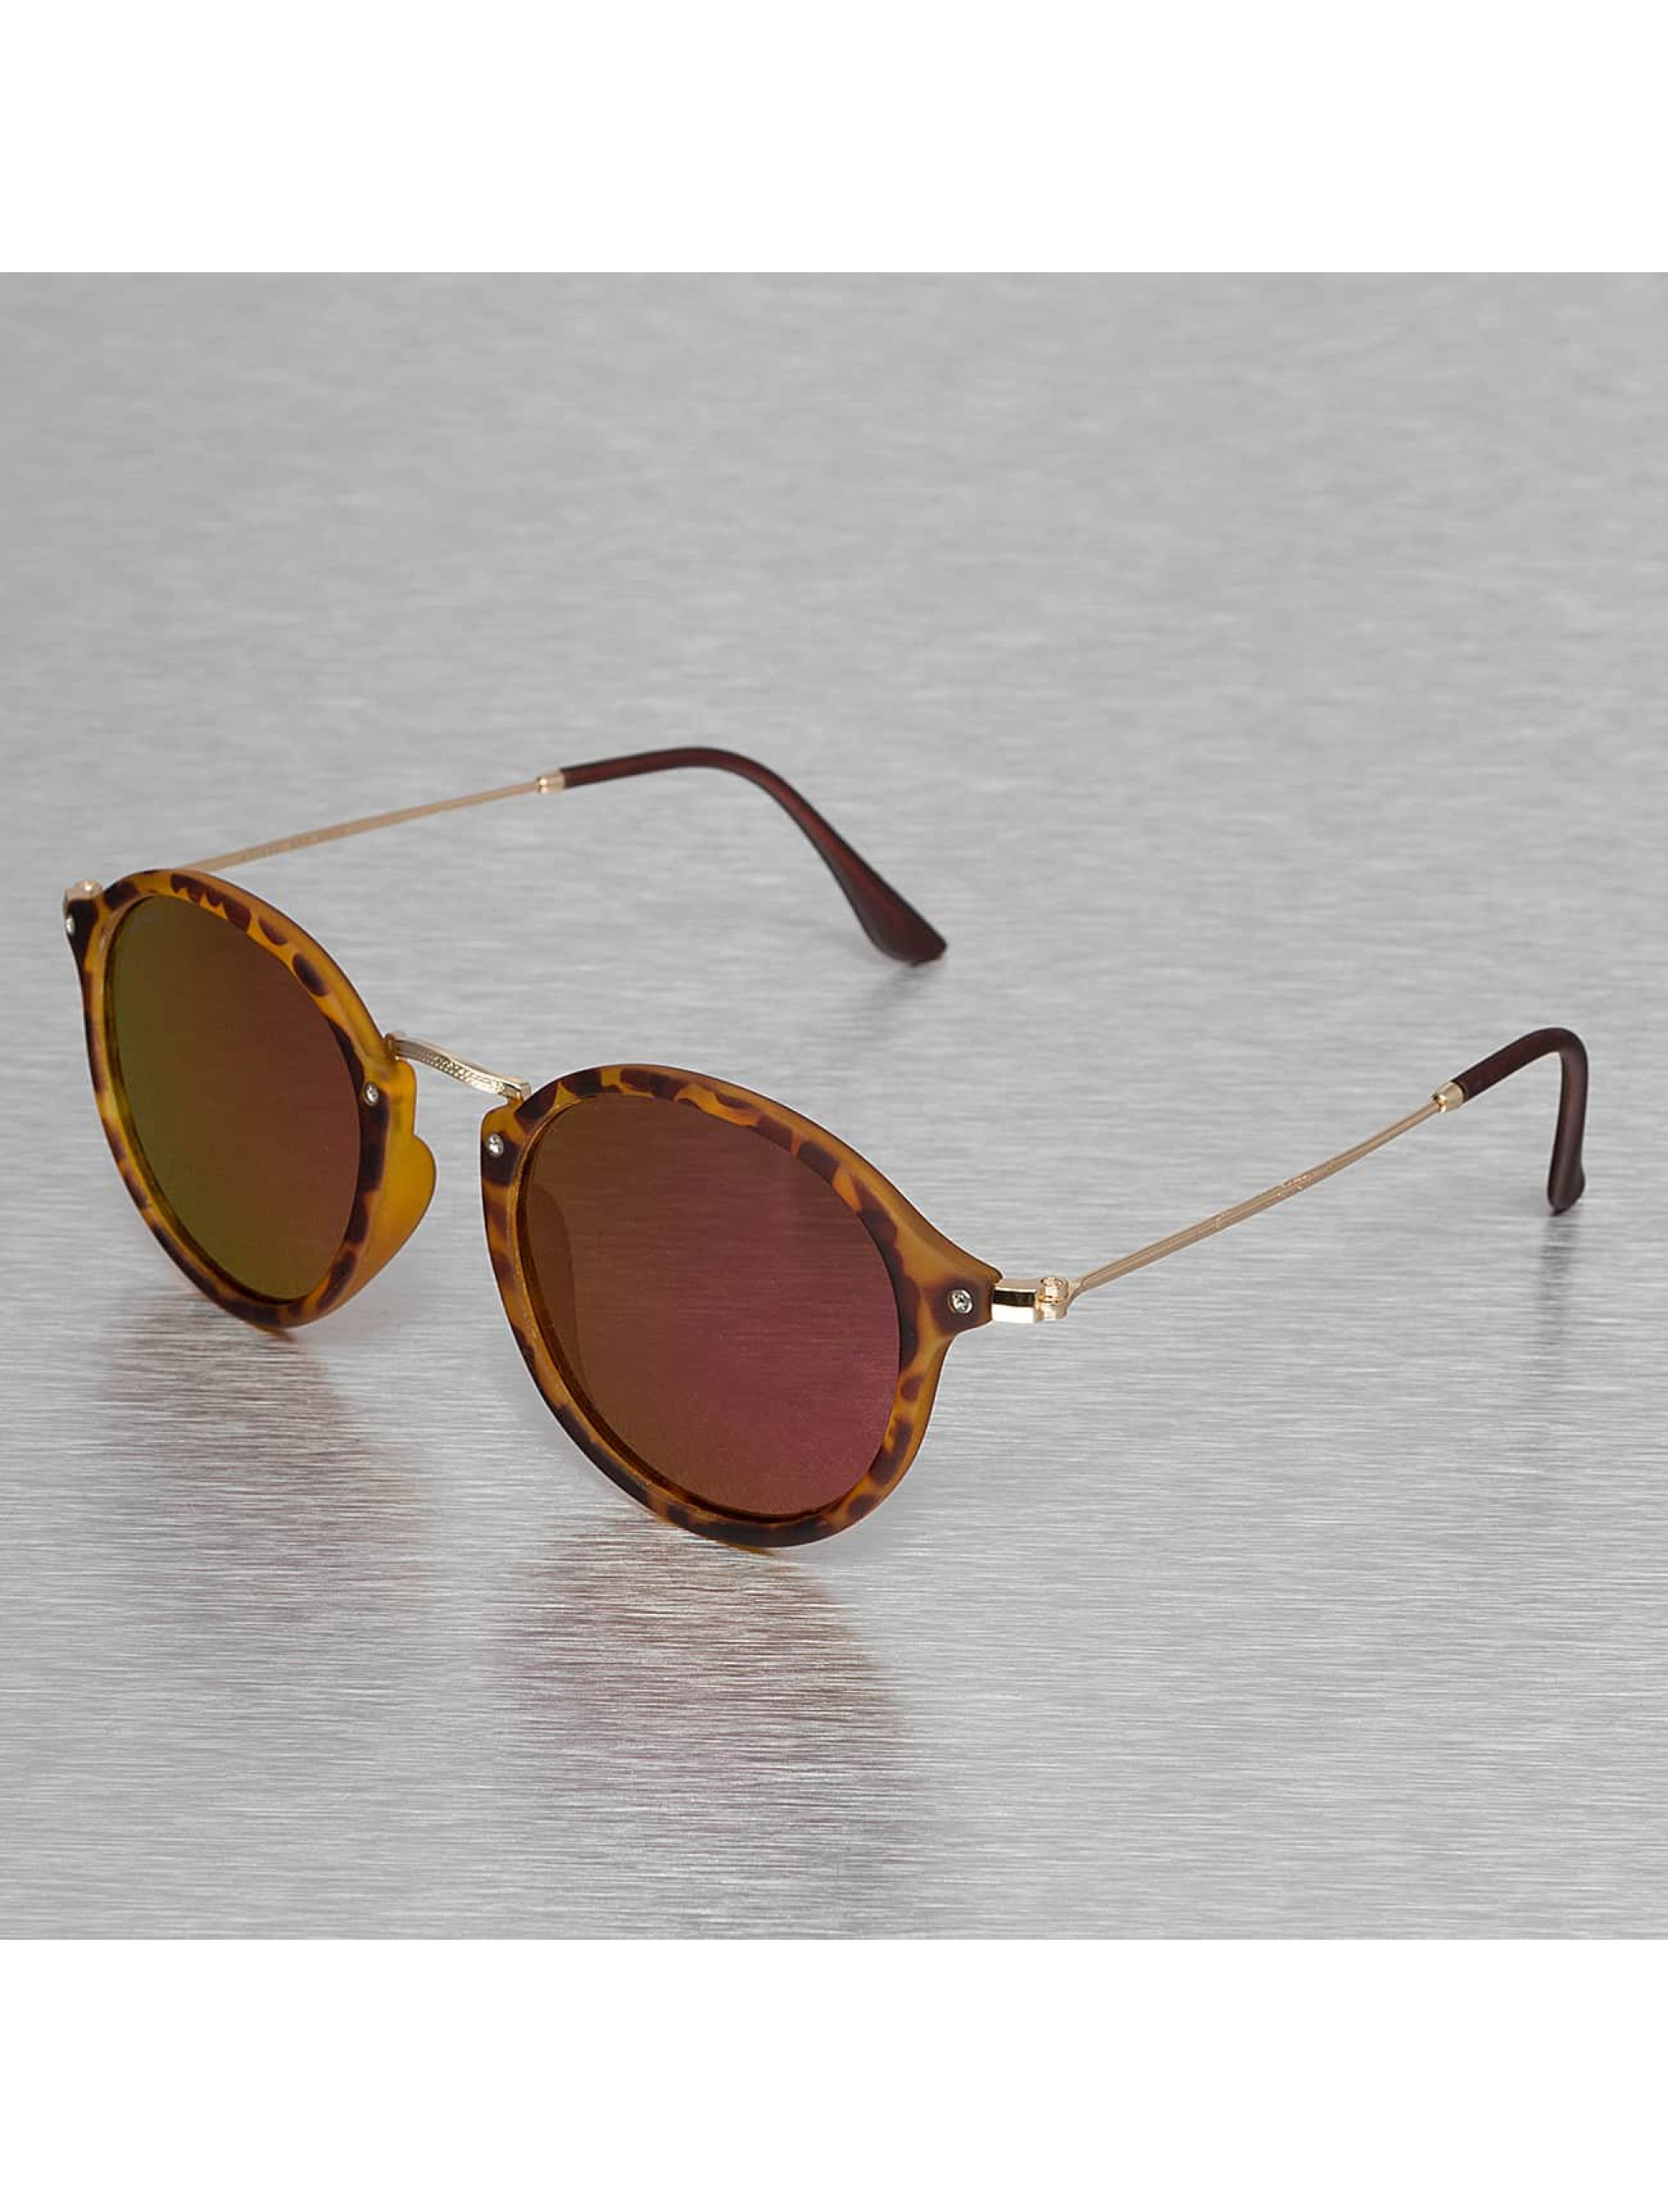 MSTRDS Sunglasses Spy Polarized Mirror brown